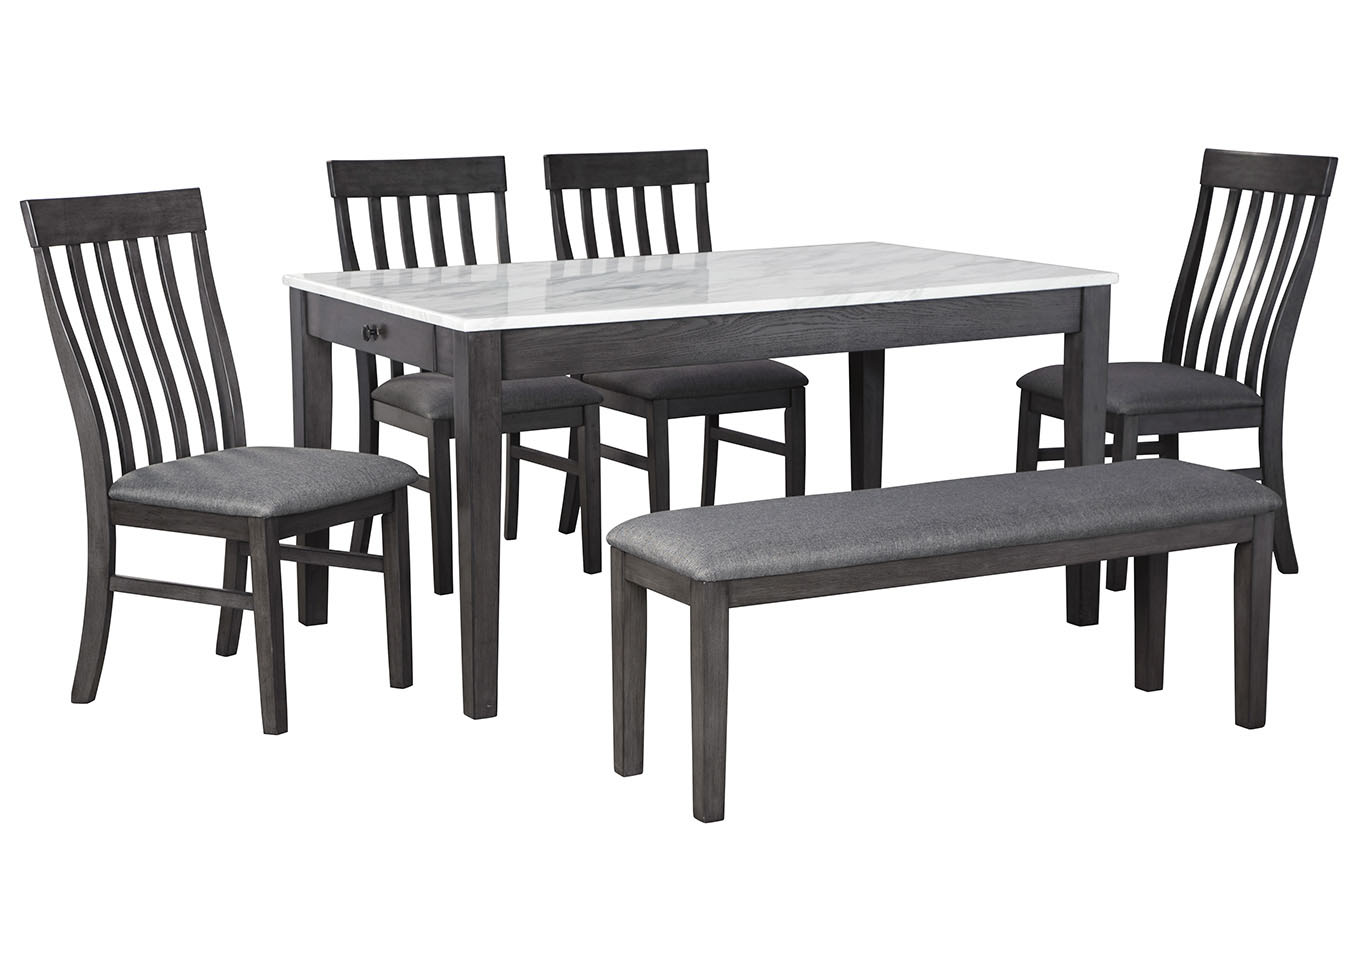 Luvoni Charcoal Dining Table w/4 Side Chair and Bench